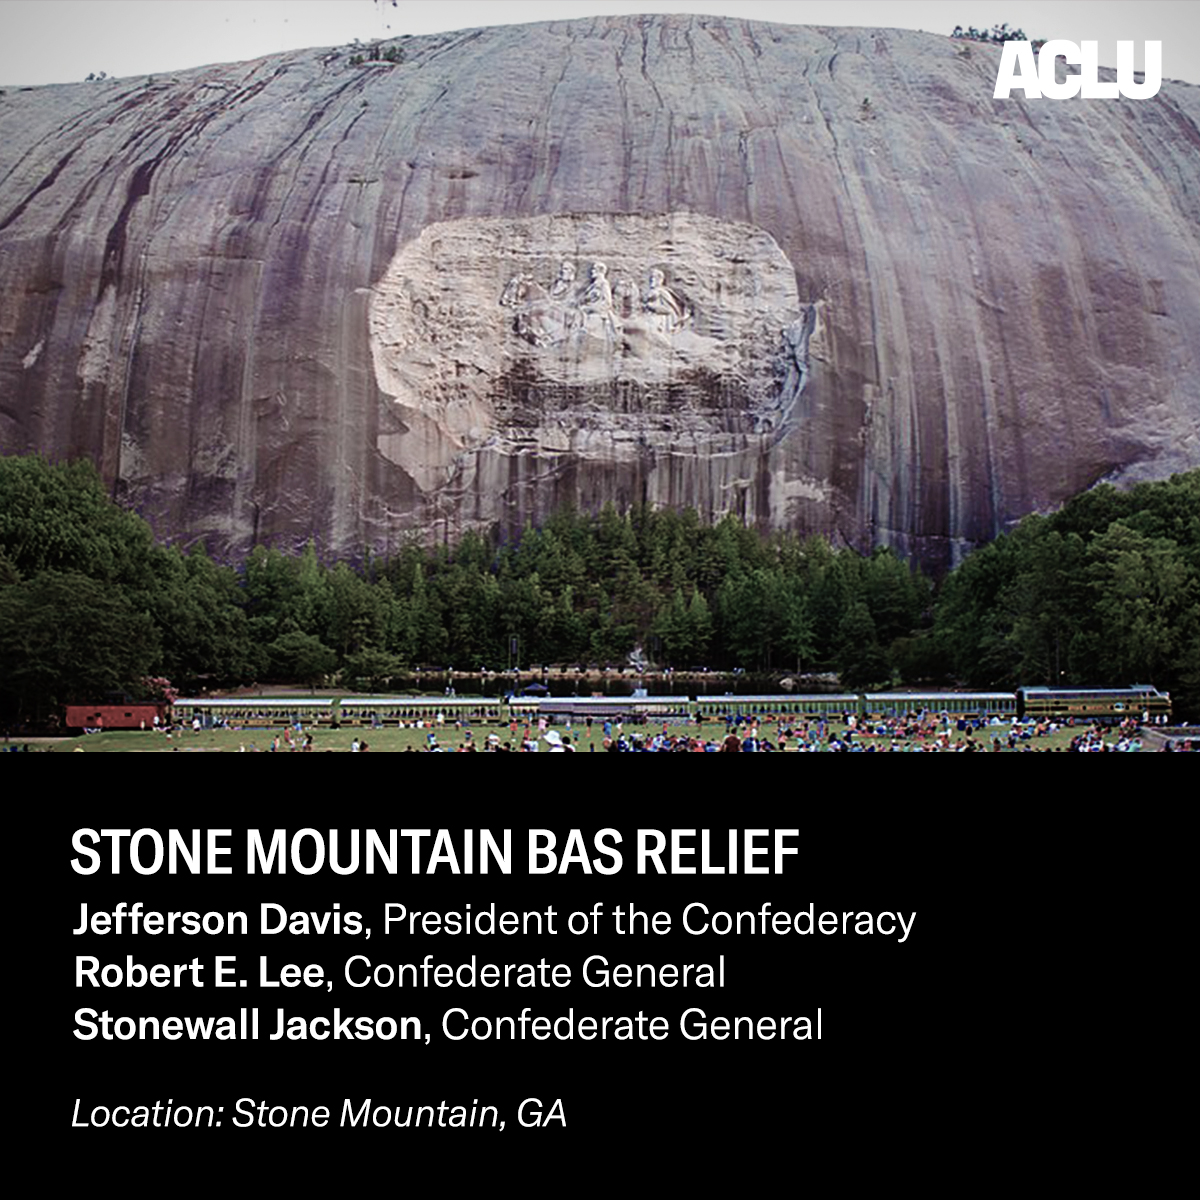 Millions each year flock to Stone Mountain, one of Georgia's most visited attractions, which memorializes three men who advanced a system of subjugation against Black people.  This monument speaks to how deeply the confederacy's legacy of white supremacy persists in our country.